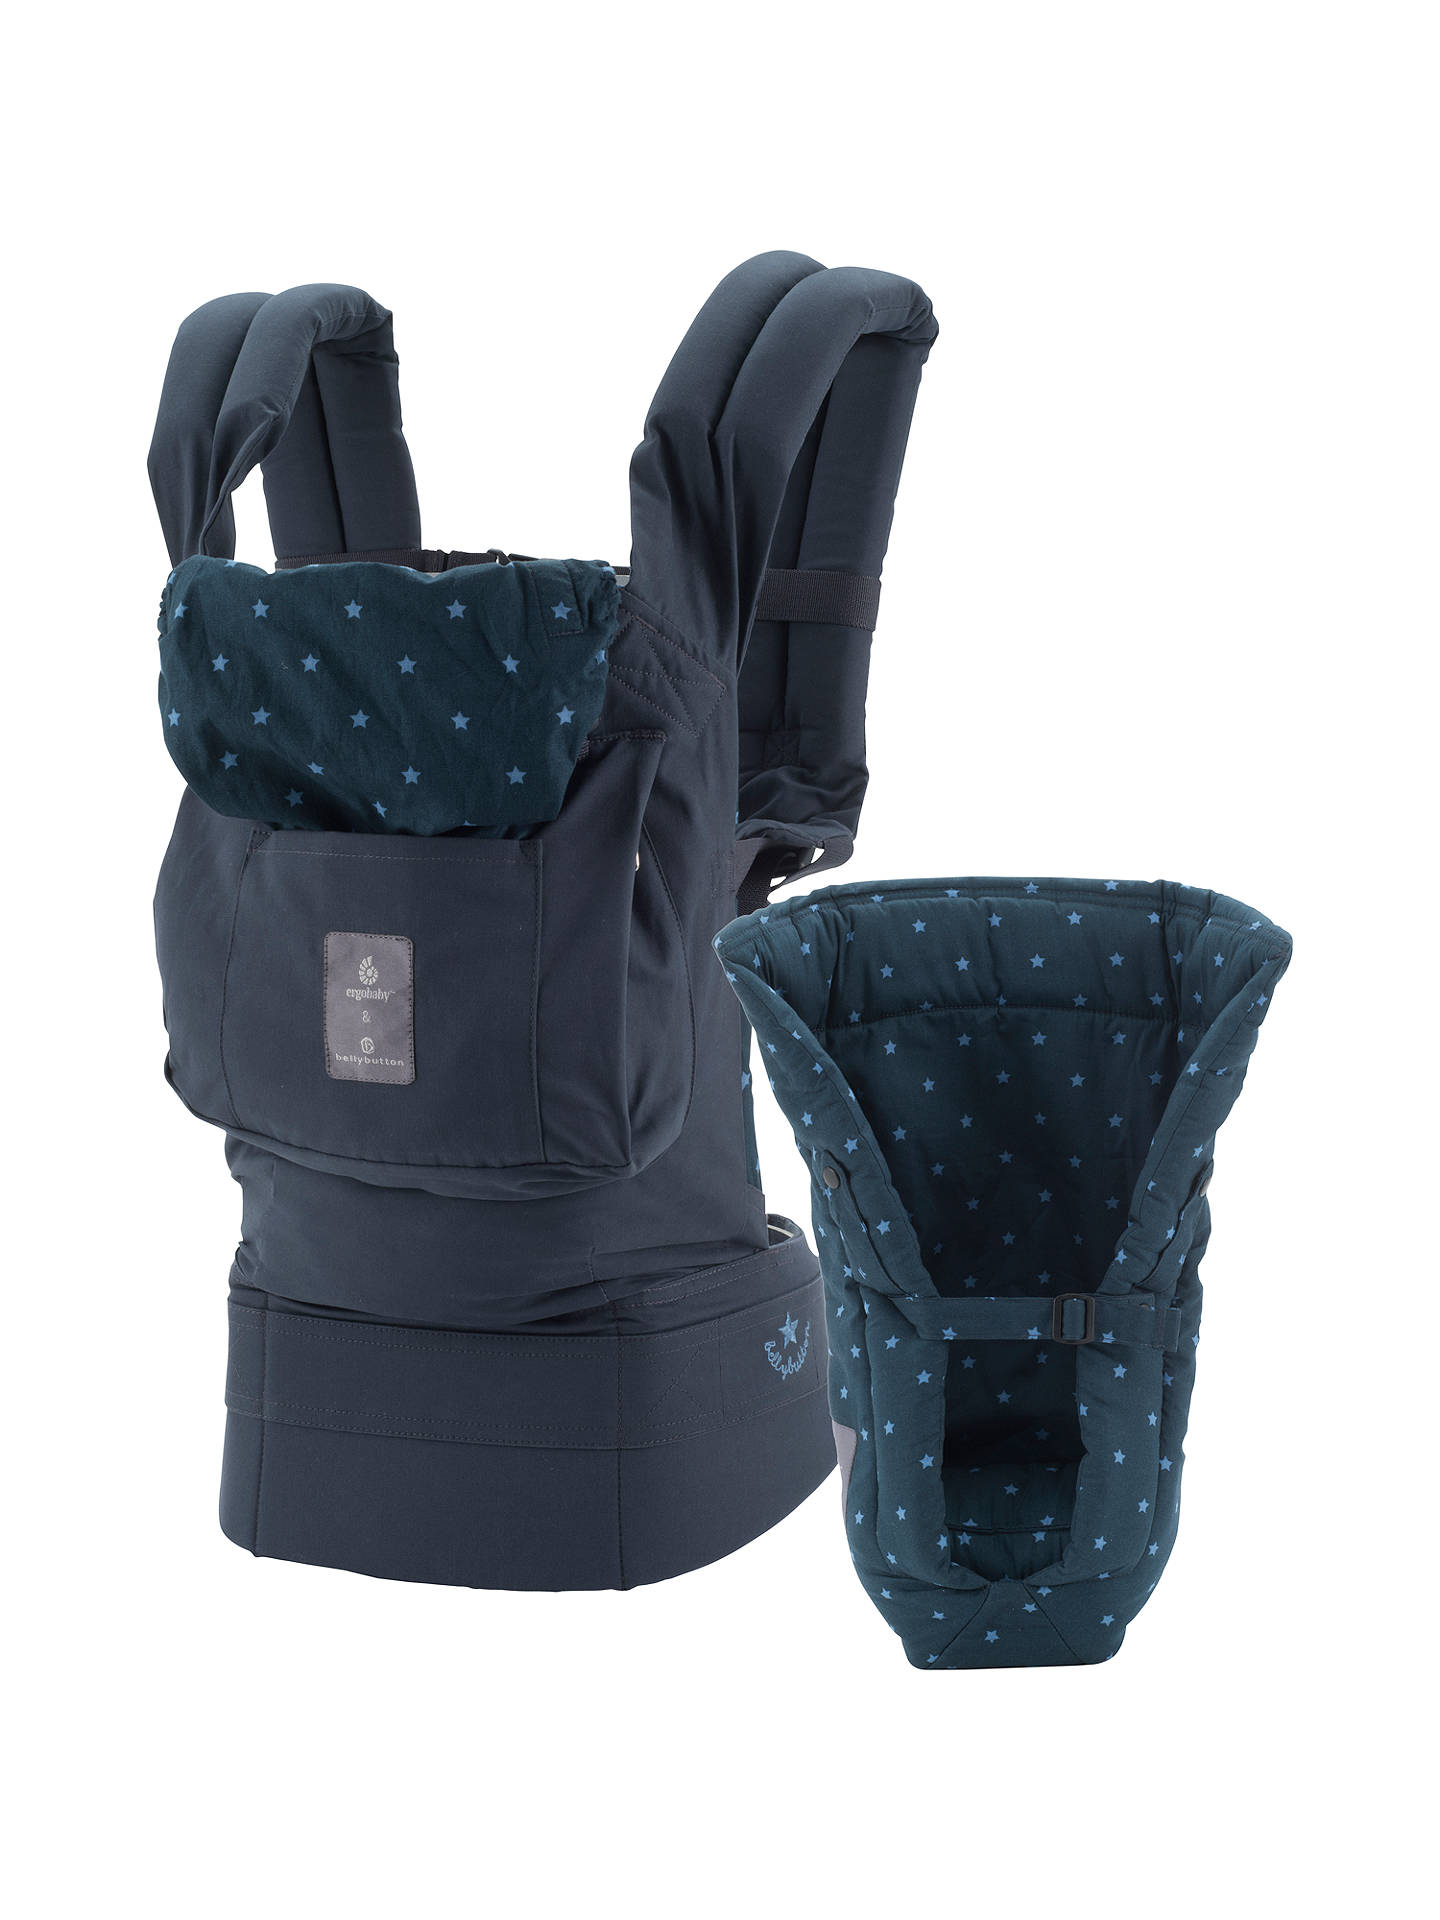 42e43783bc3 Buy Ergobaby Bundle of Joy Bellybutton Baby Carrier